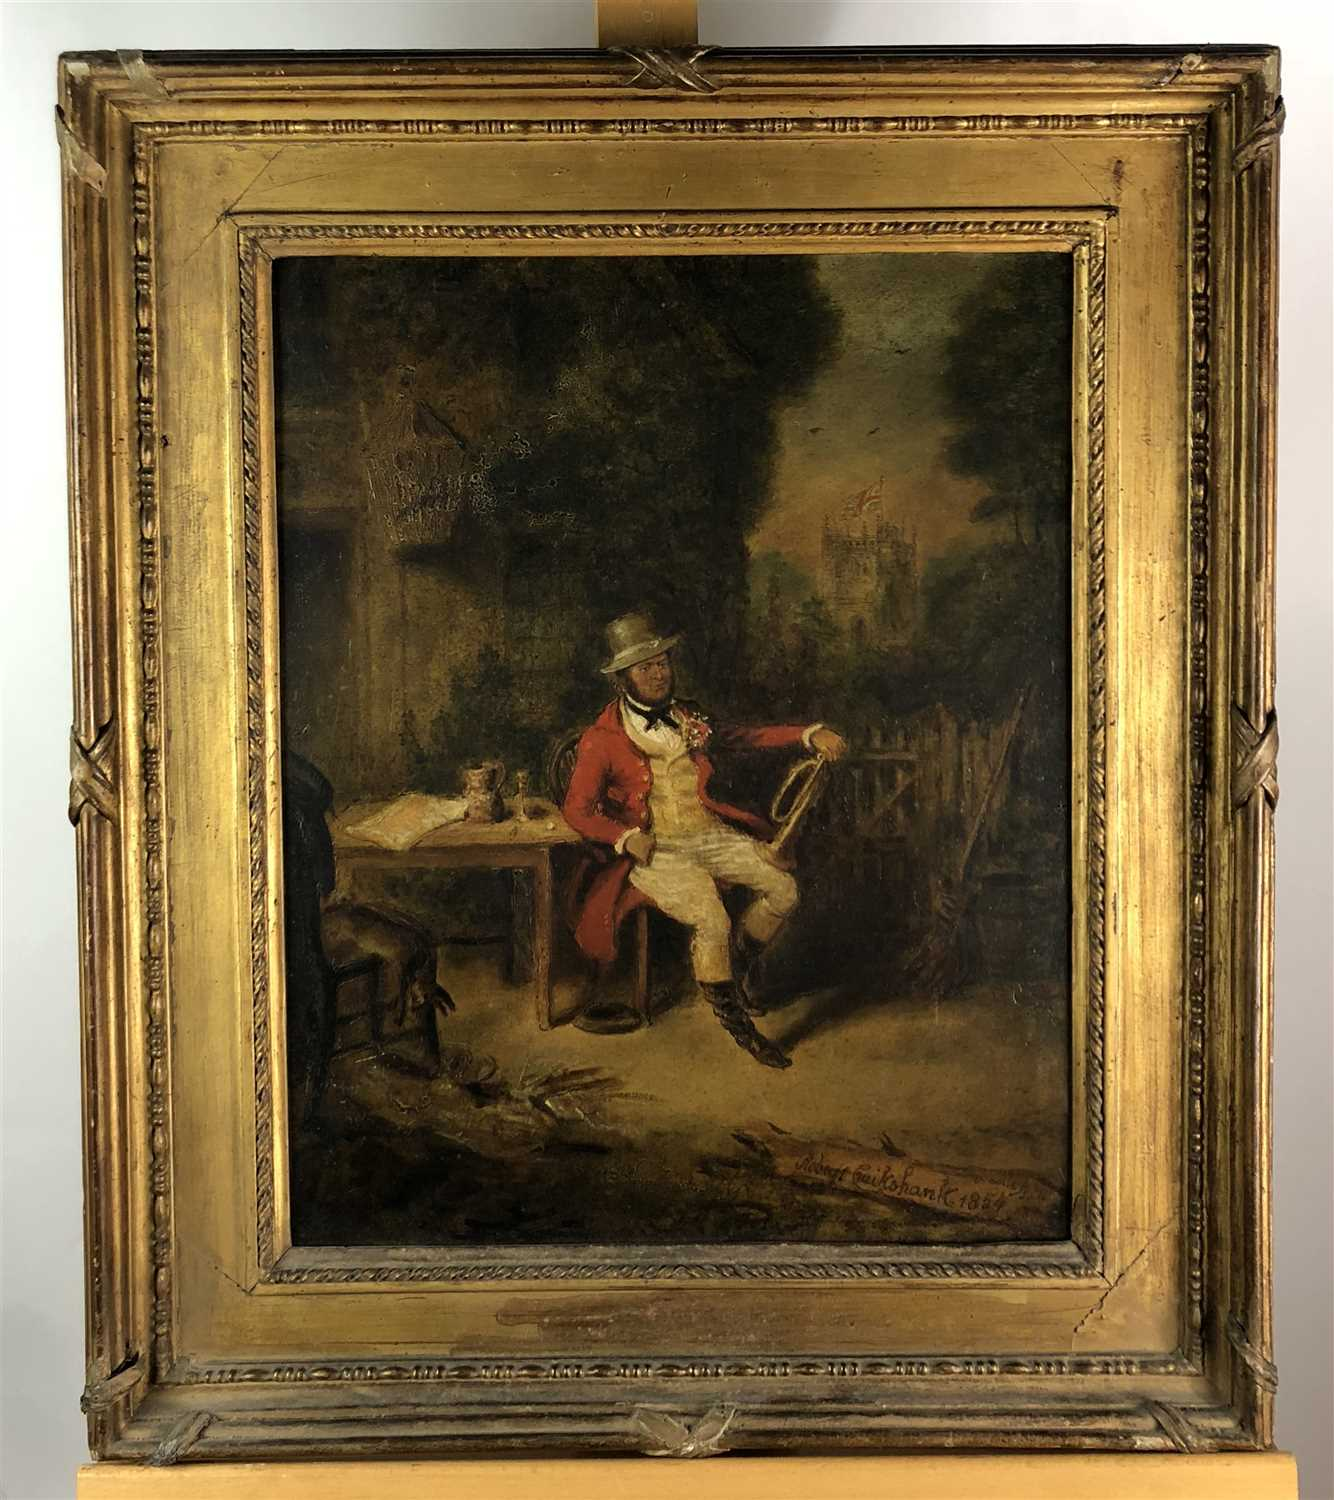 Lot 73-Robert Cruikshank painting